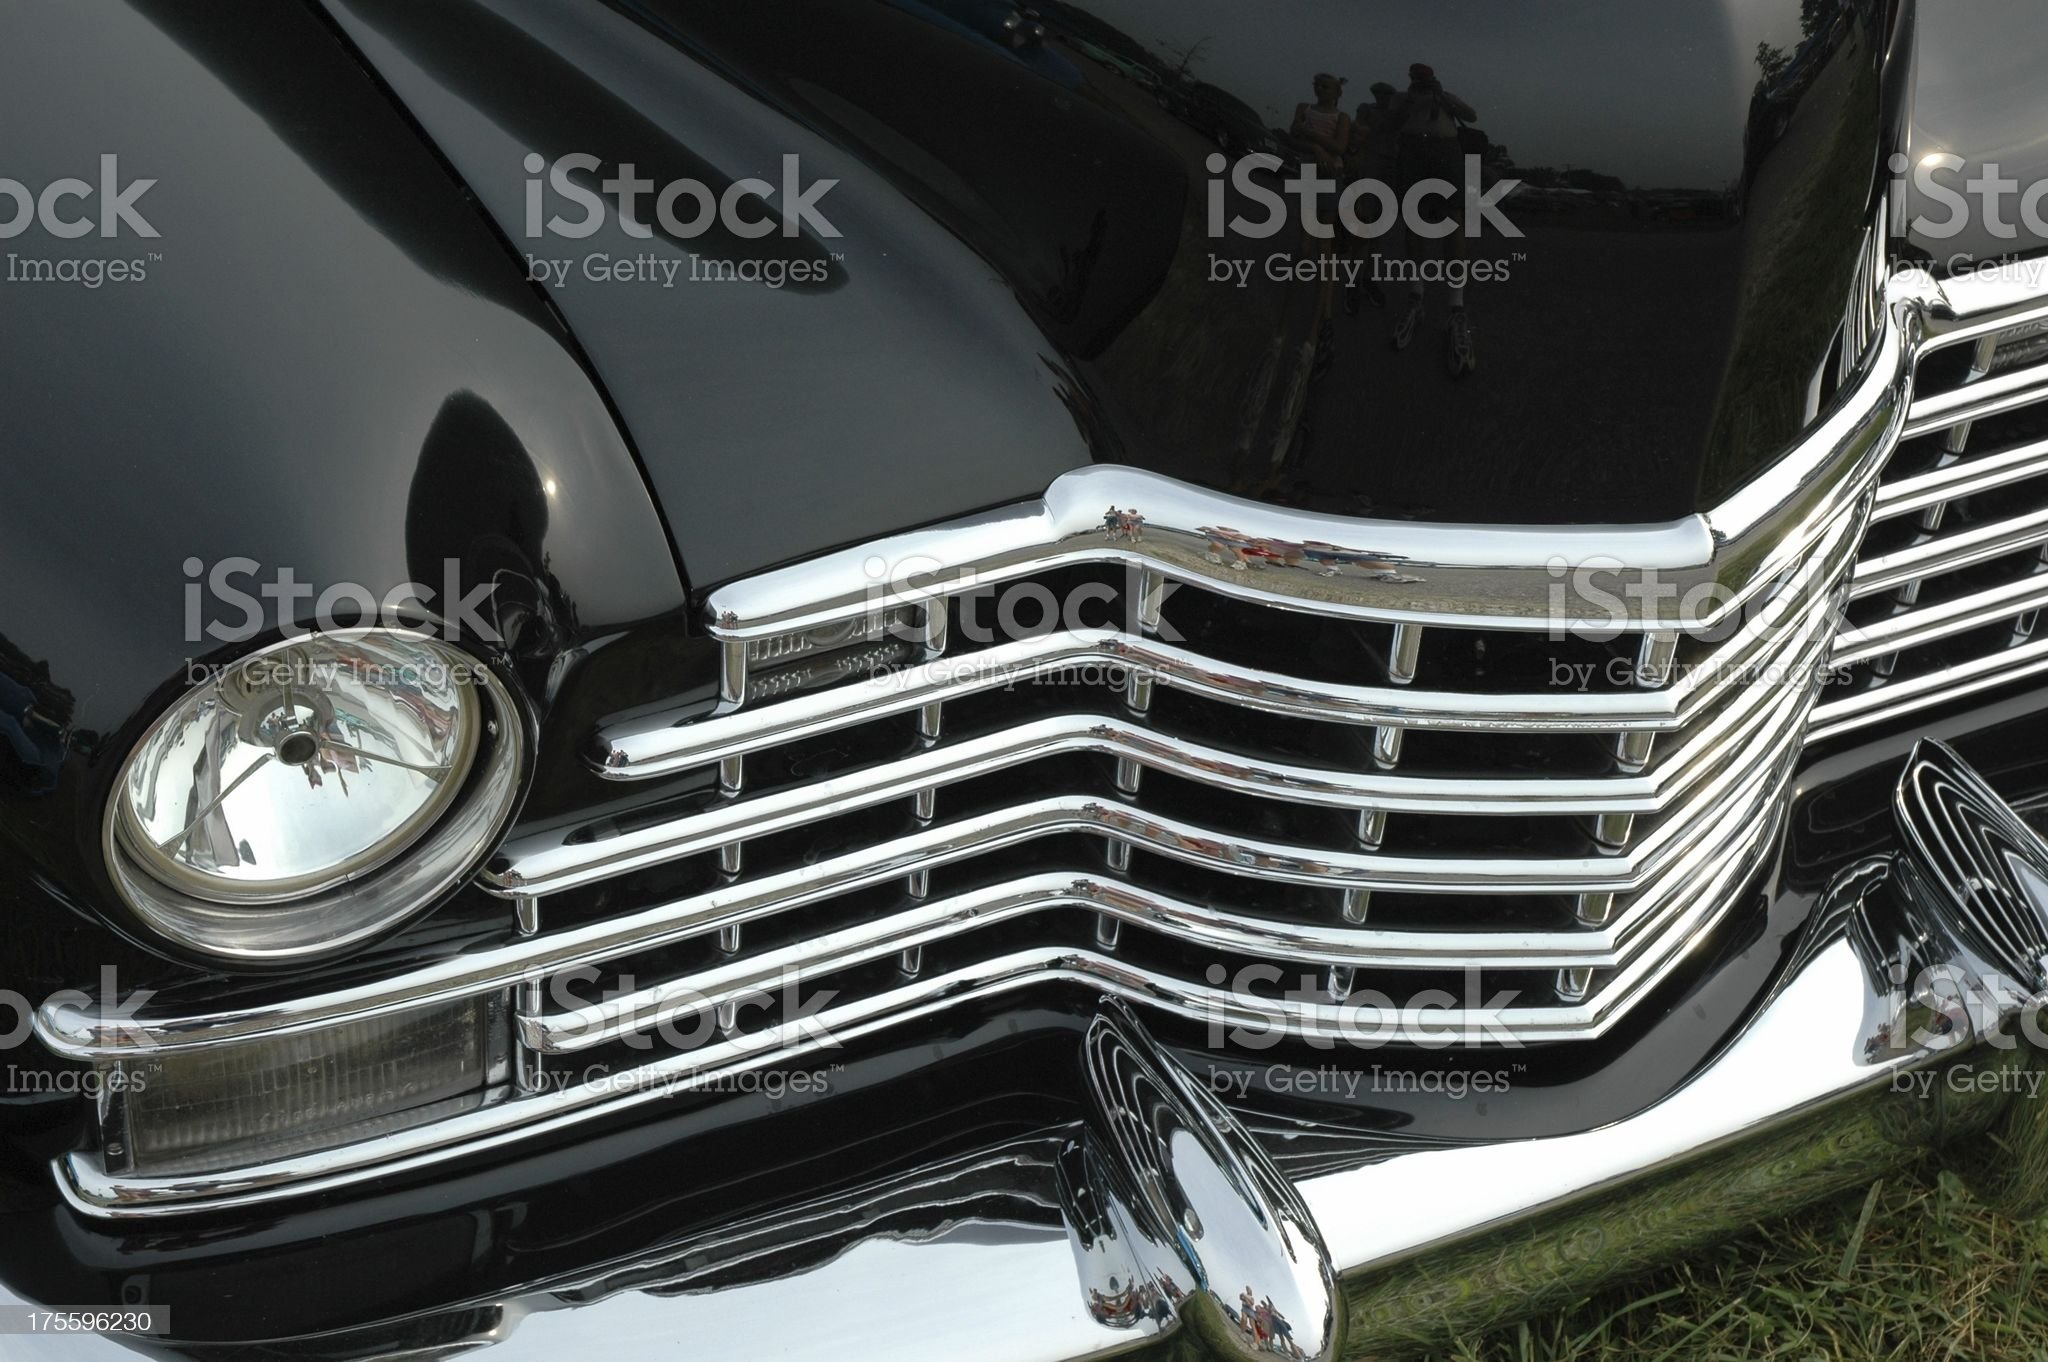 Metal Mouth 2 - Extreme Chrome on Classic Street Rod royalty-free stock photo